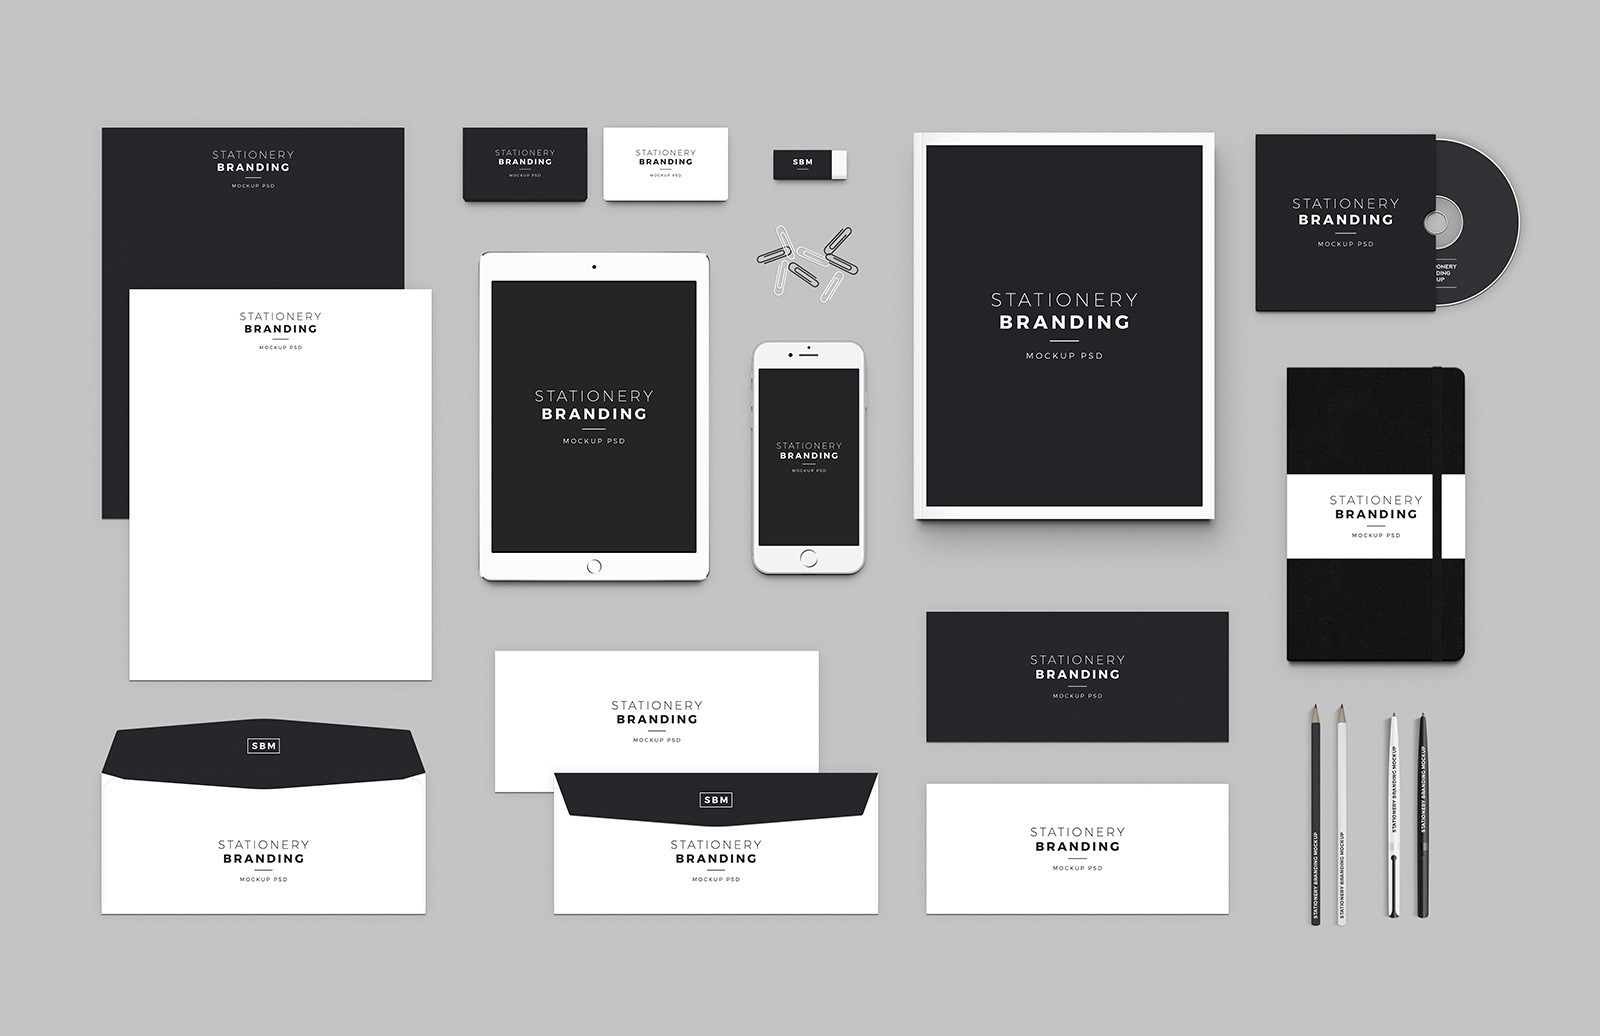 Free Stationery Branding Mockup Pack